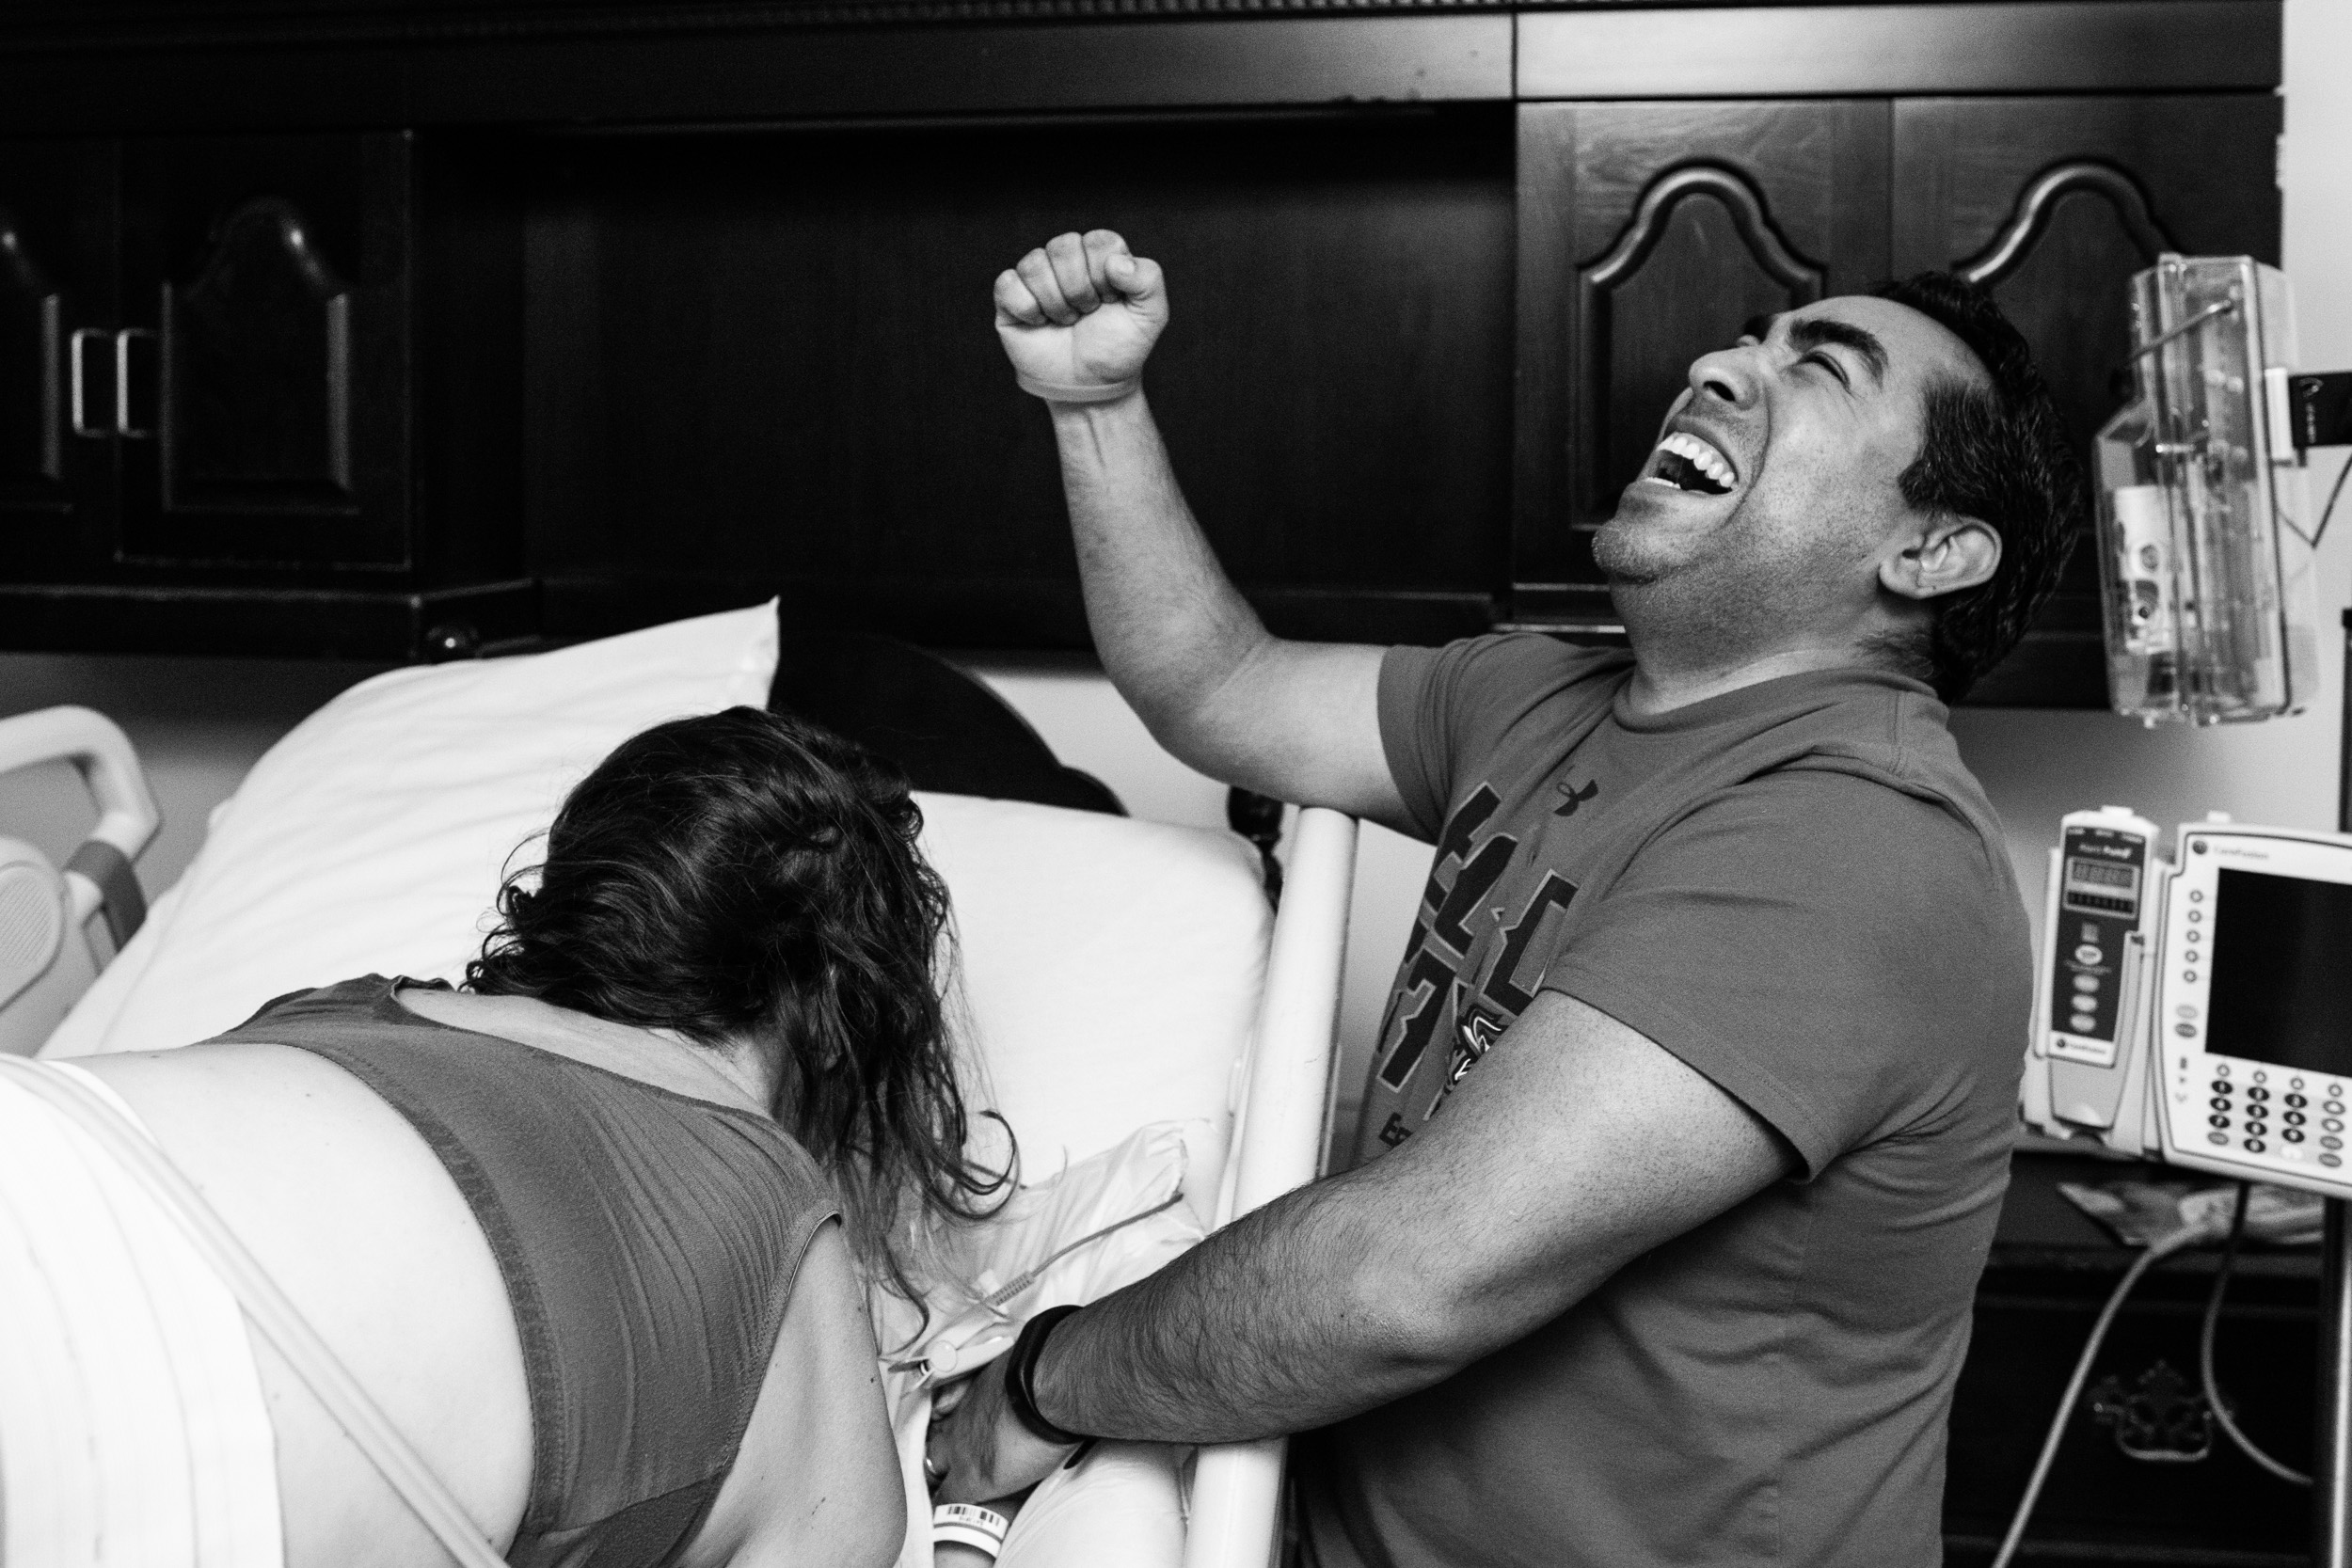 excited dad puts arm up to celebrate having a baby boy